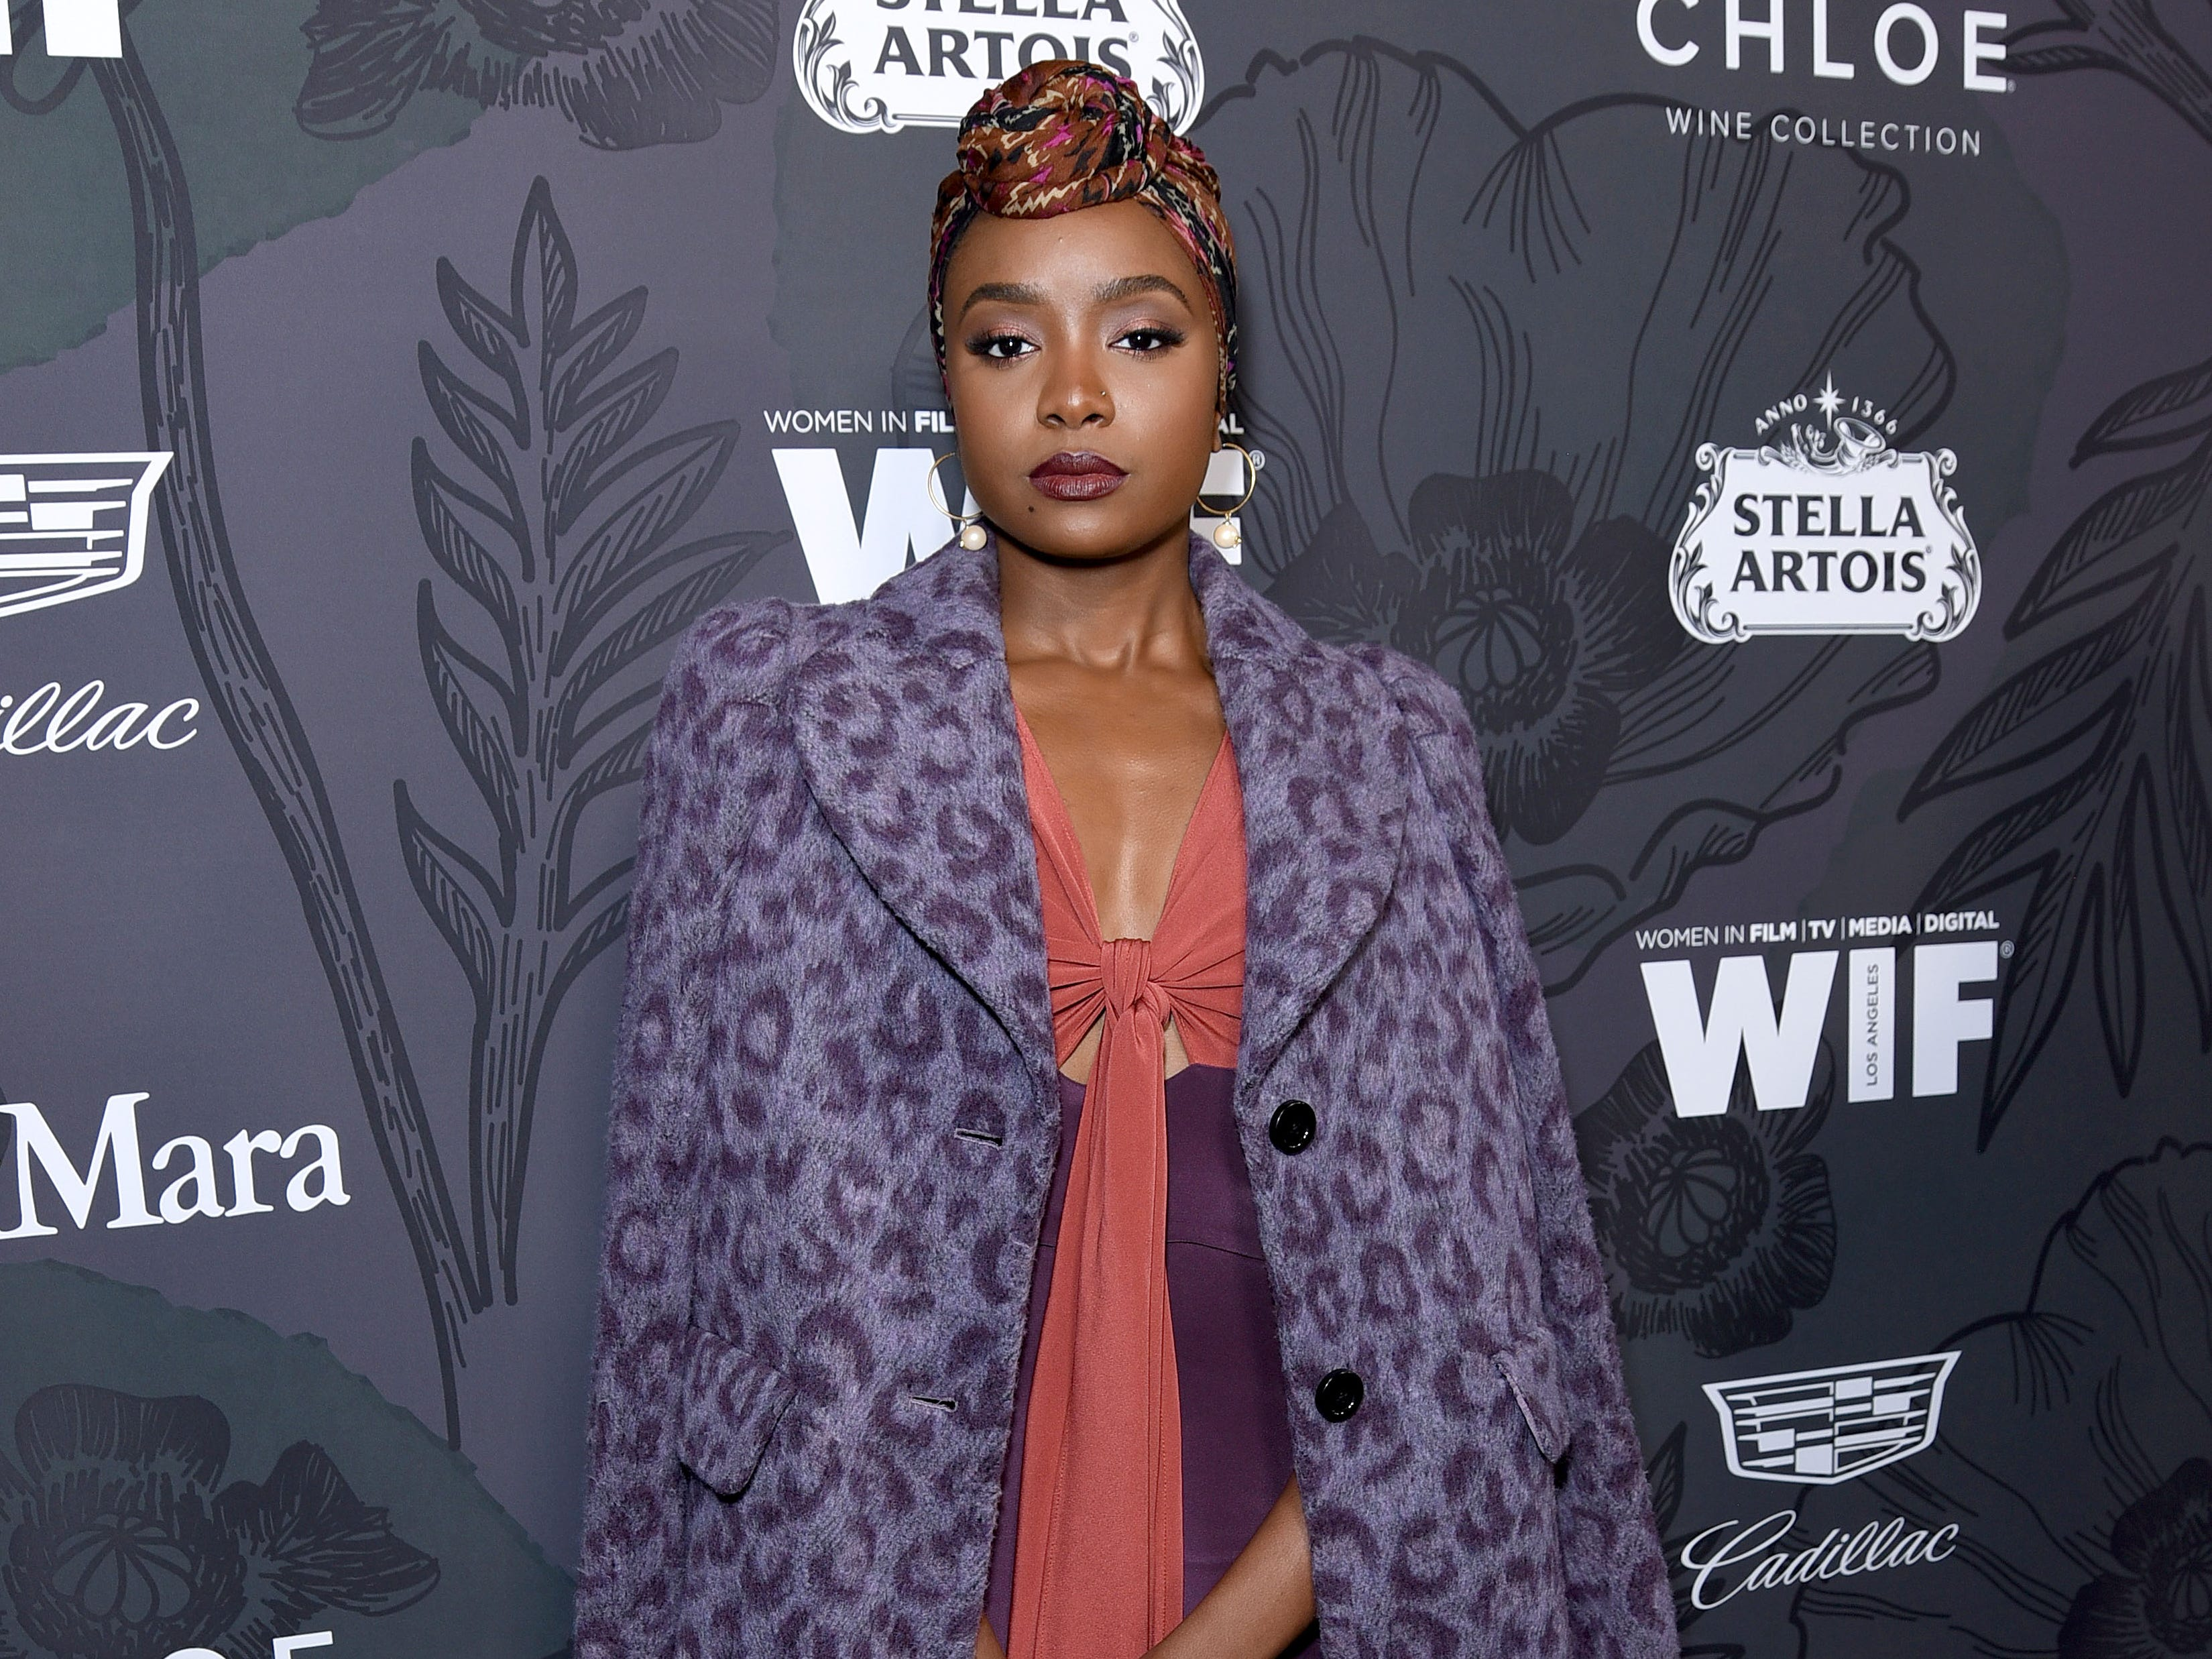 BEVERLY HILLS, CALIFORNIA - FEBRUARY 22: KiKi Layne attends the 12th Annual Women in Film Oscar Nominees Party Presented by Max Mara with additional support from Chloe Wine Collection, Stella Artois and Cadillac at Spring Place on February 22, 2019 in Los Angeles, California. (Photo by Presley Ann/Getty Images for Women In Film) ORG XMIT: 775291745 ORIG FILE ID: 1131514293